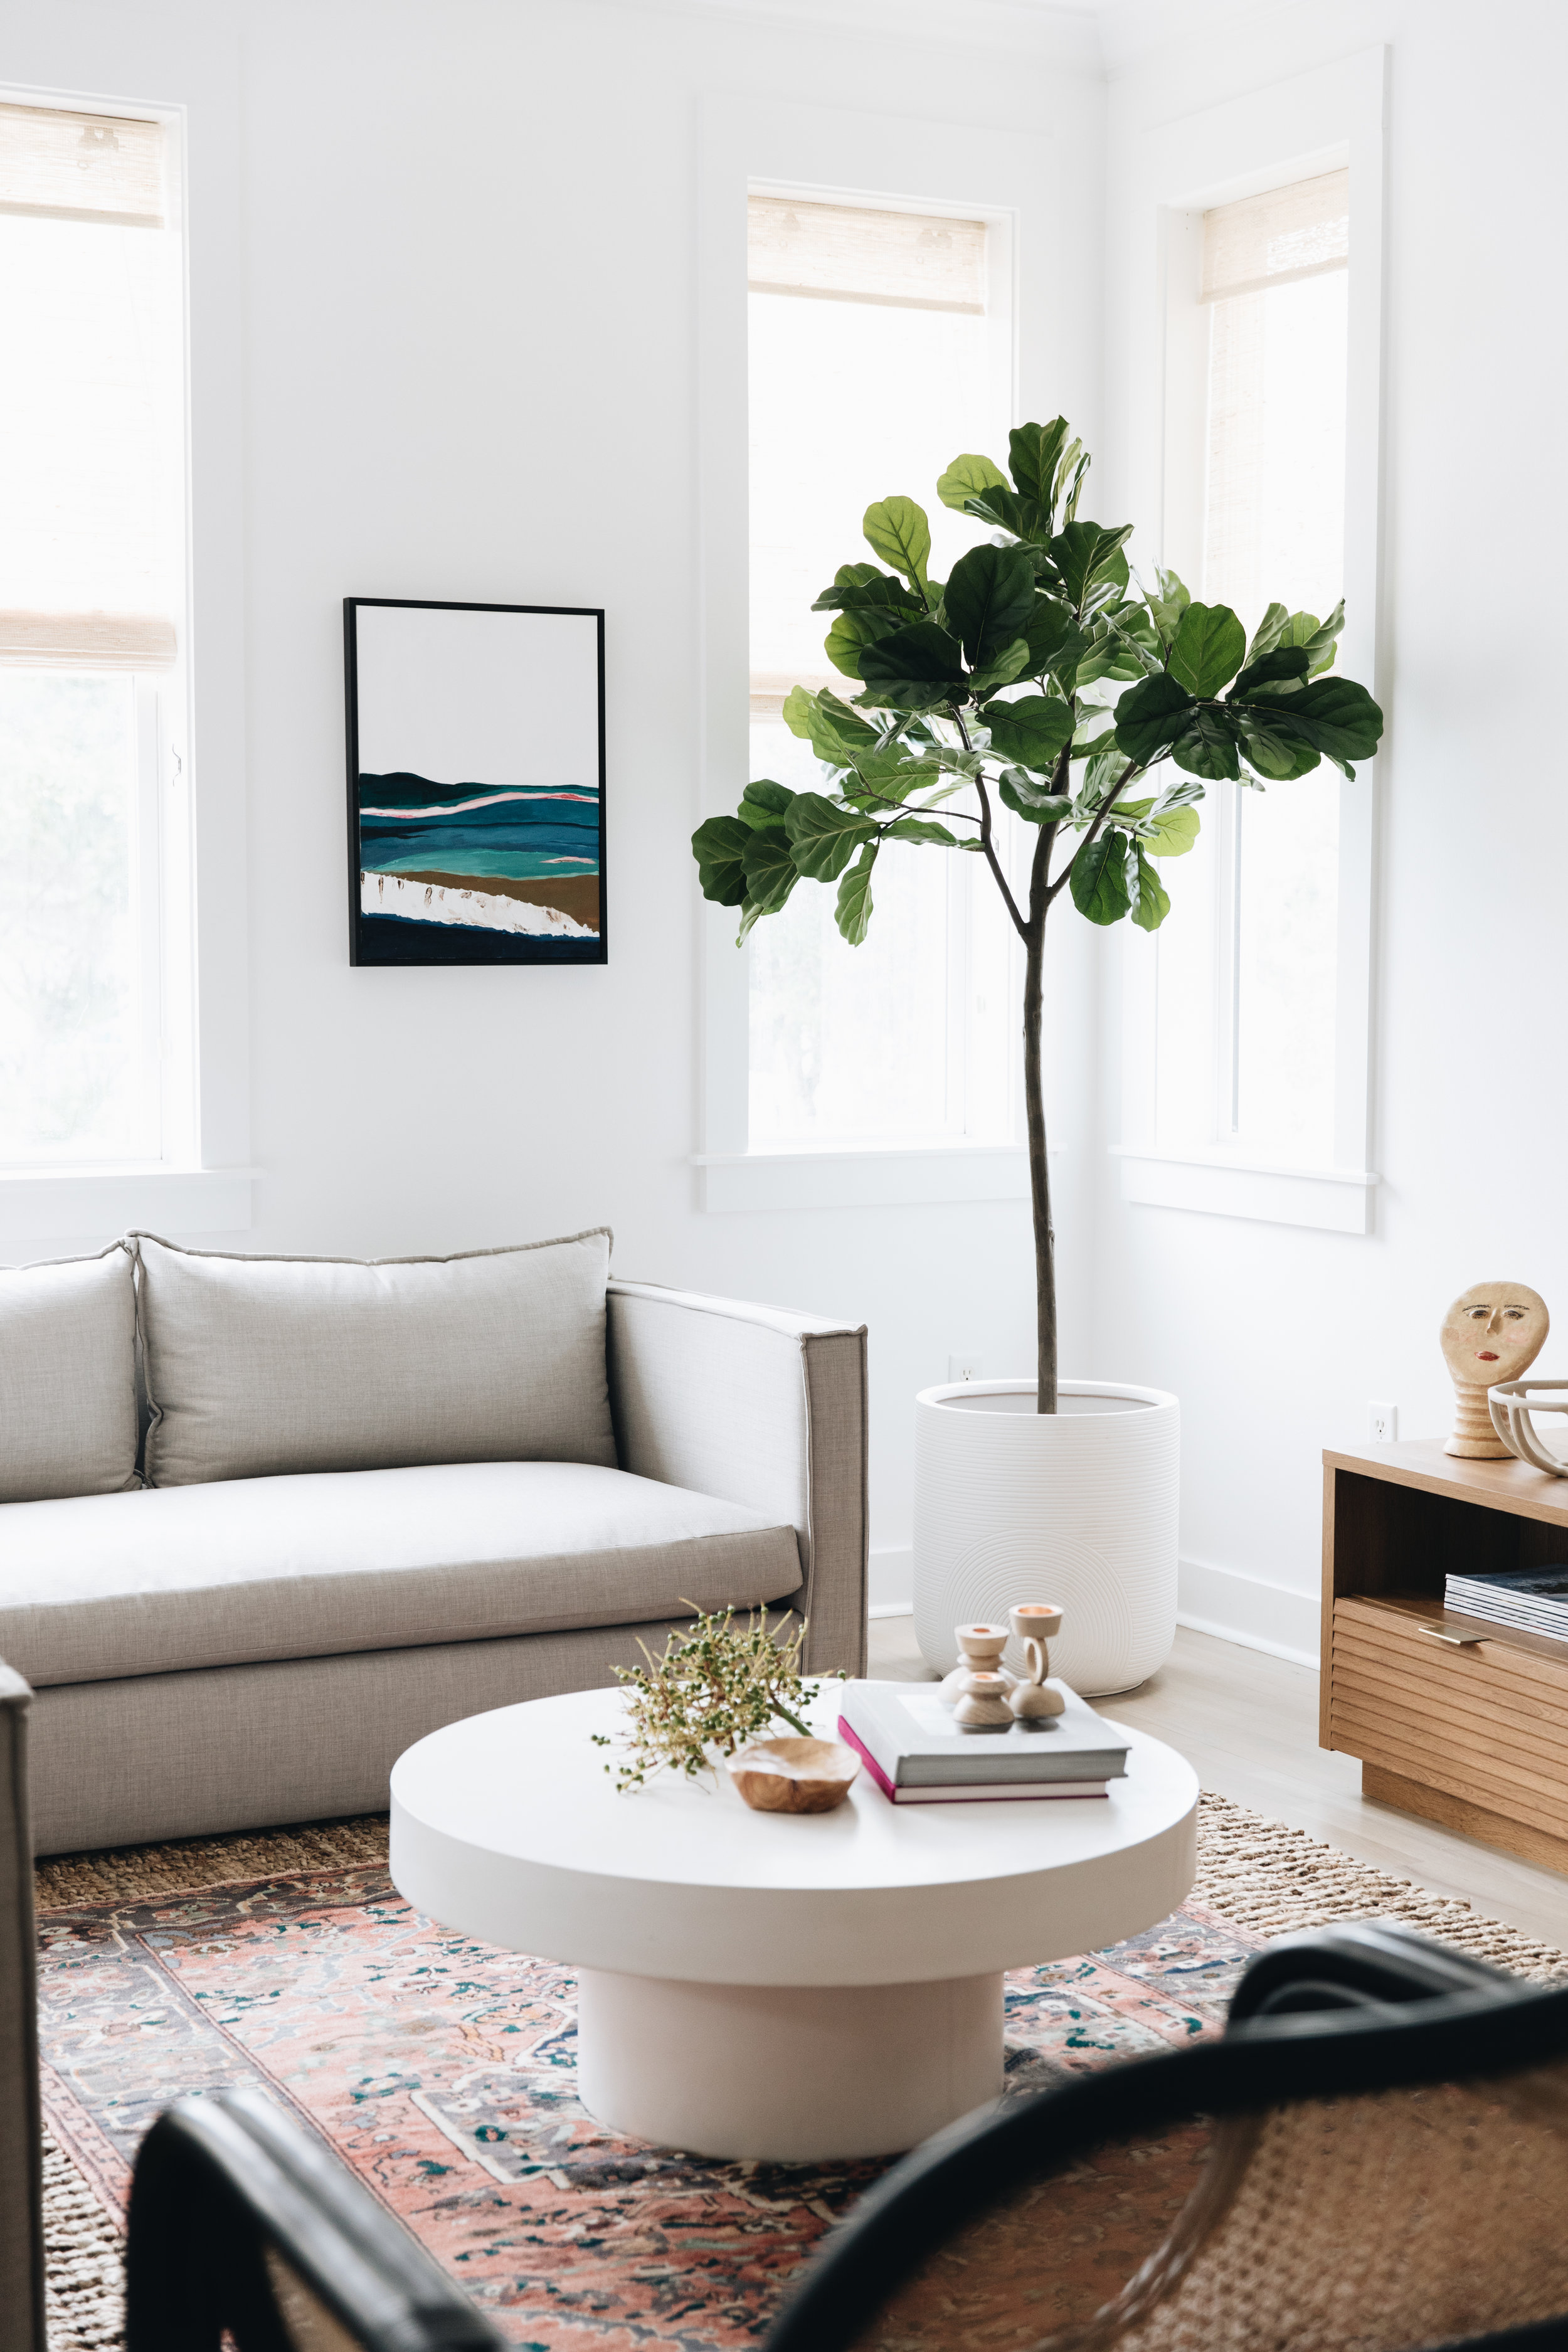 Sofa (custom from Clad Home)    Faux Fiddle Leaf    Coffee Table (Sold Out, Similar)    Wood Bowl    Planter